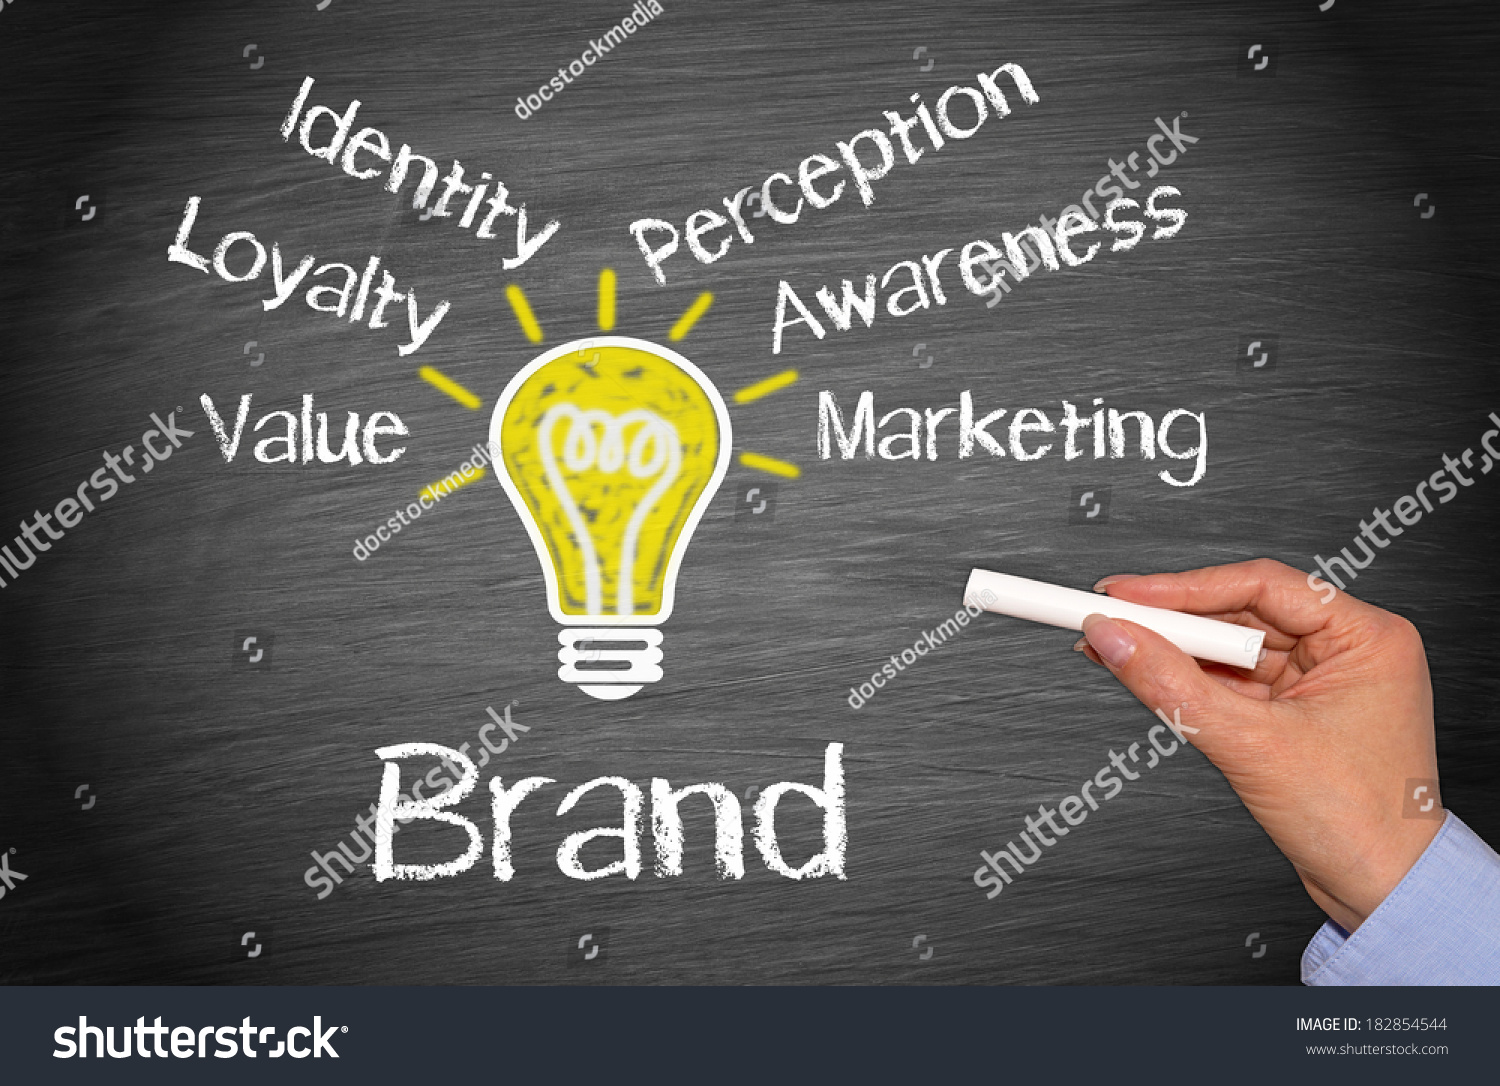 concepts of brand management Posts about brand management concepts written by david j bartolini, hbsc, mba.